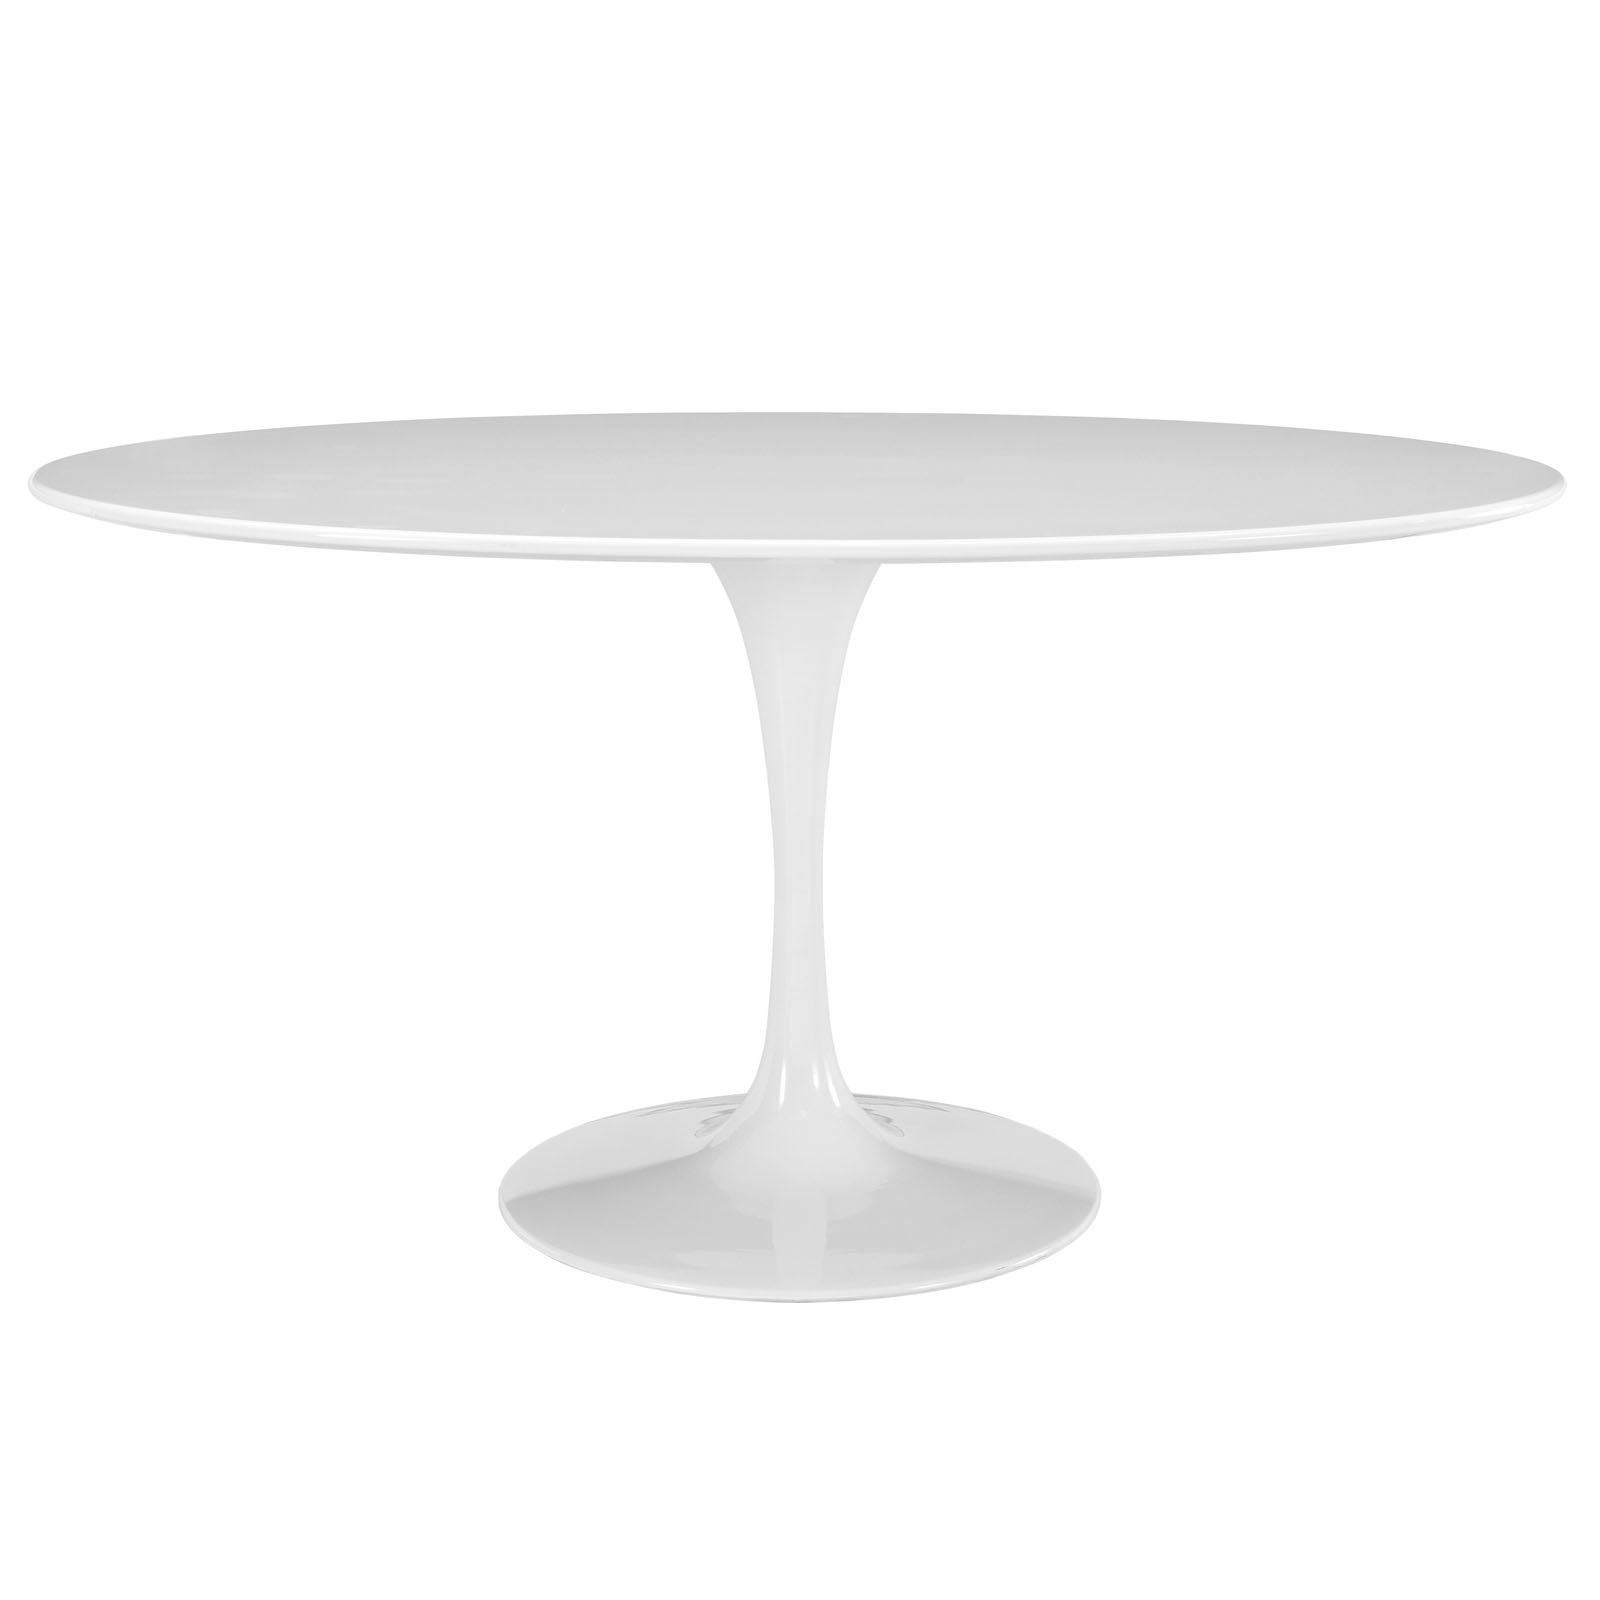 Modway Lippa 60'' Mid-Century Modern Kitchen and Dining Table with Oval Top and Pedestal Base in White by Modway